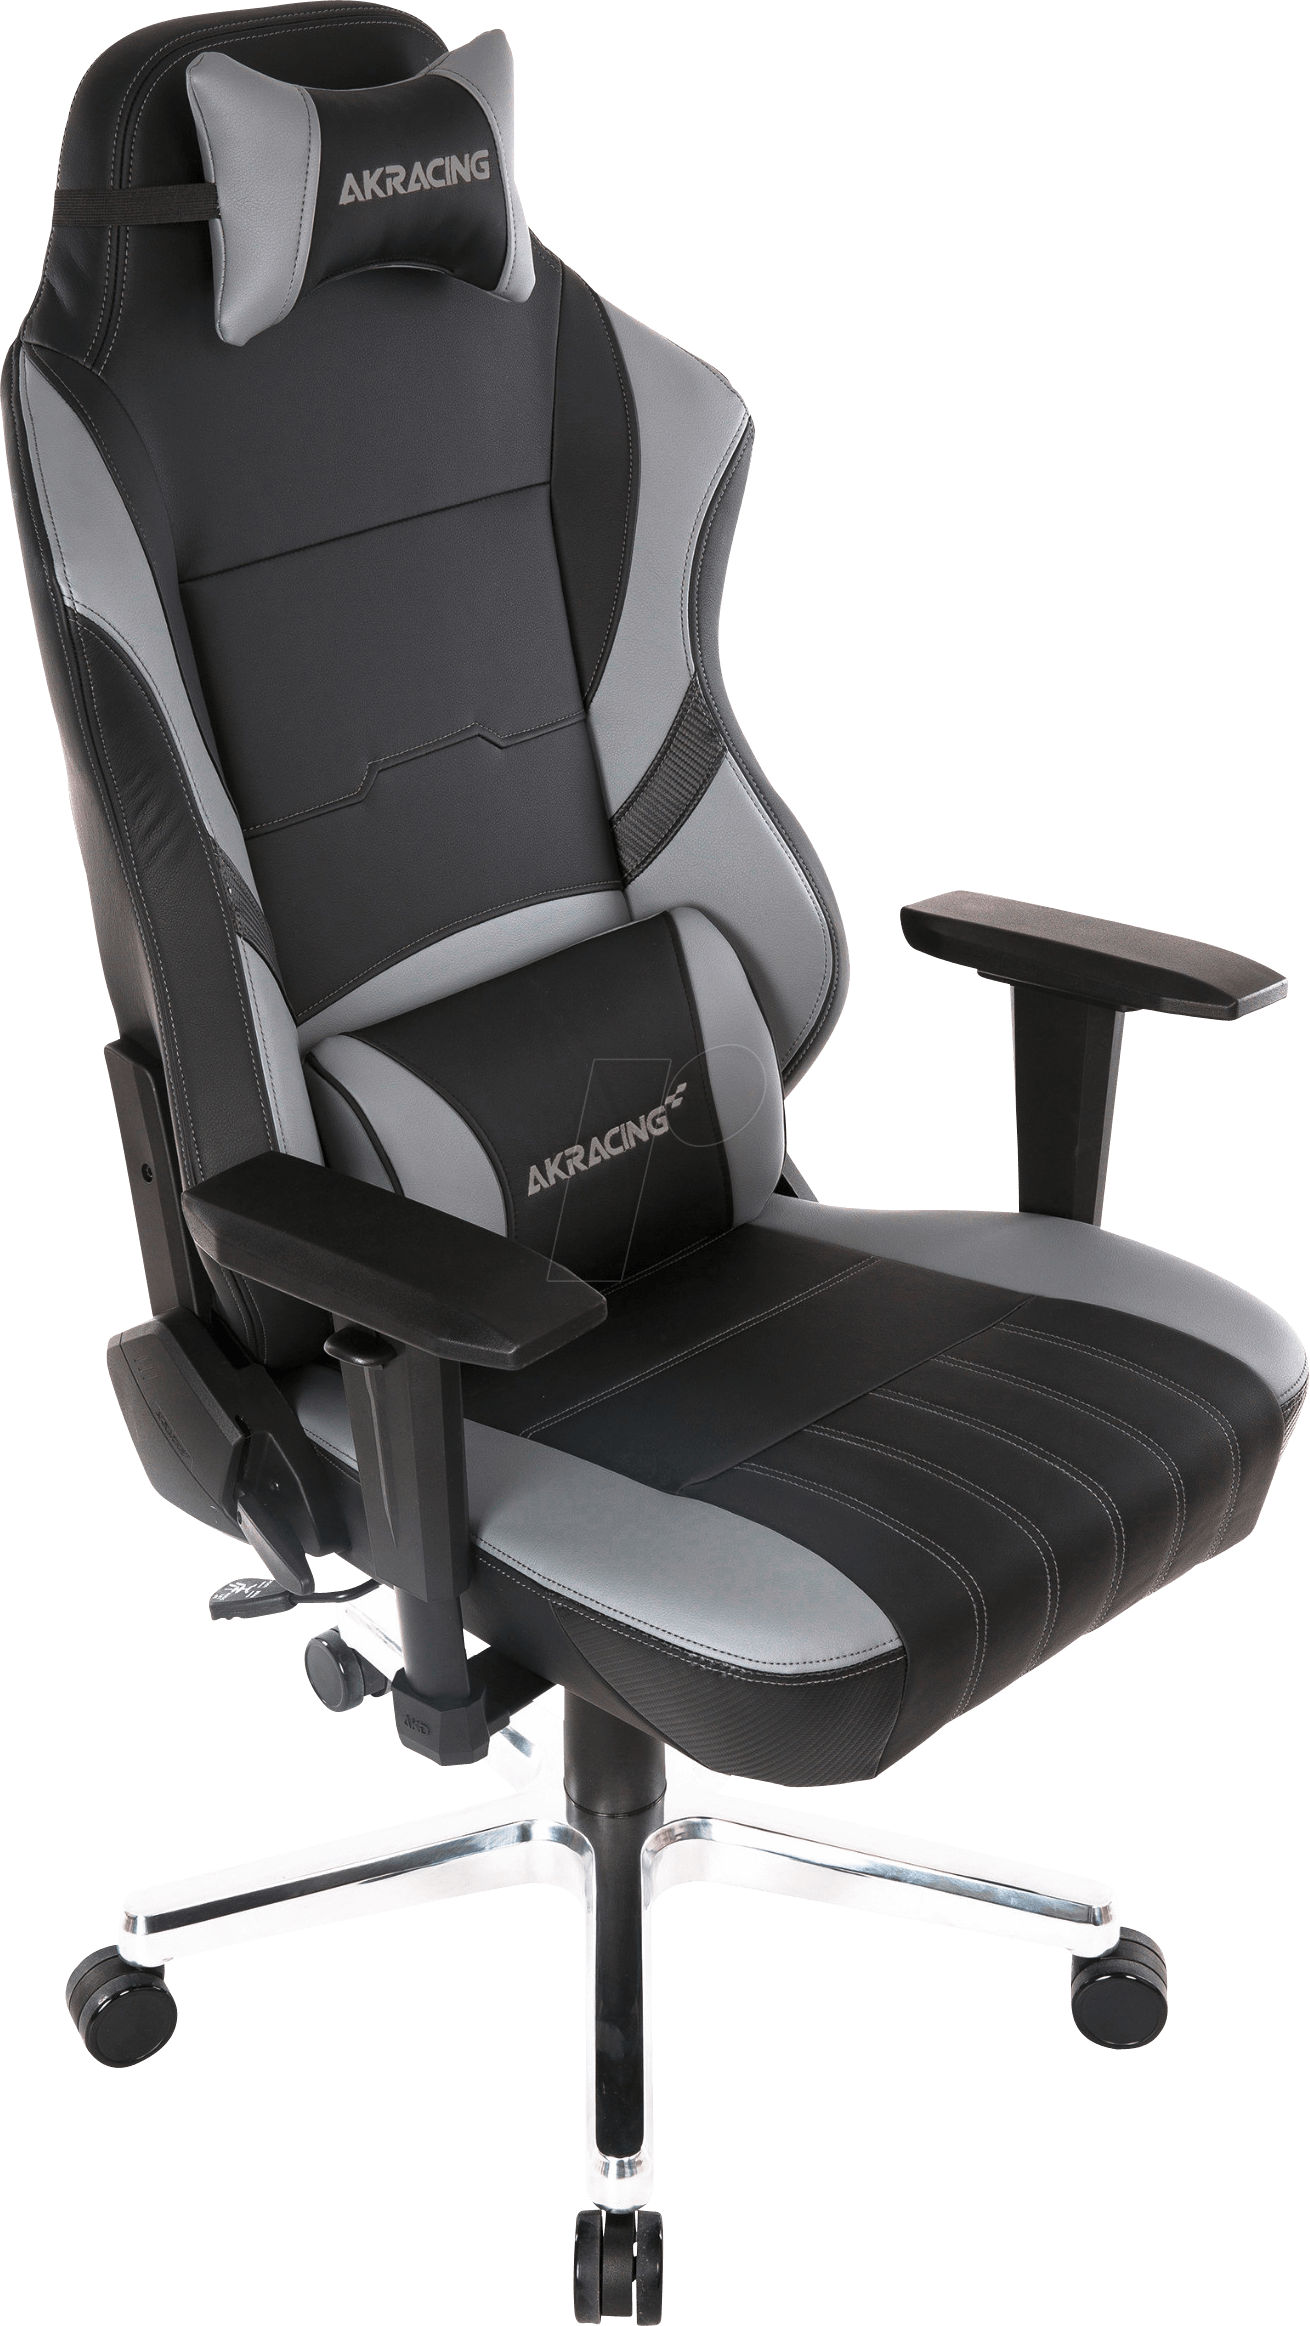 Akracing Meraki Office Chair Grey Ak Gy